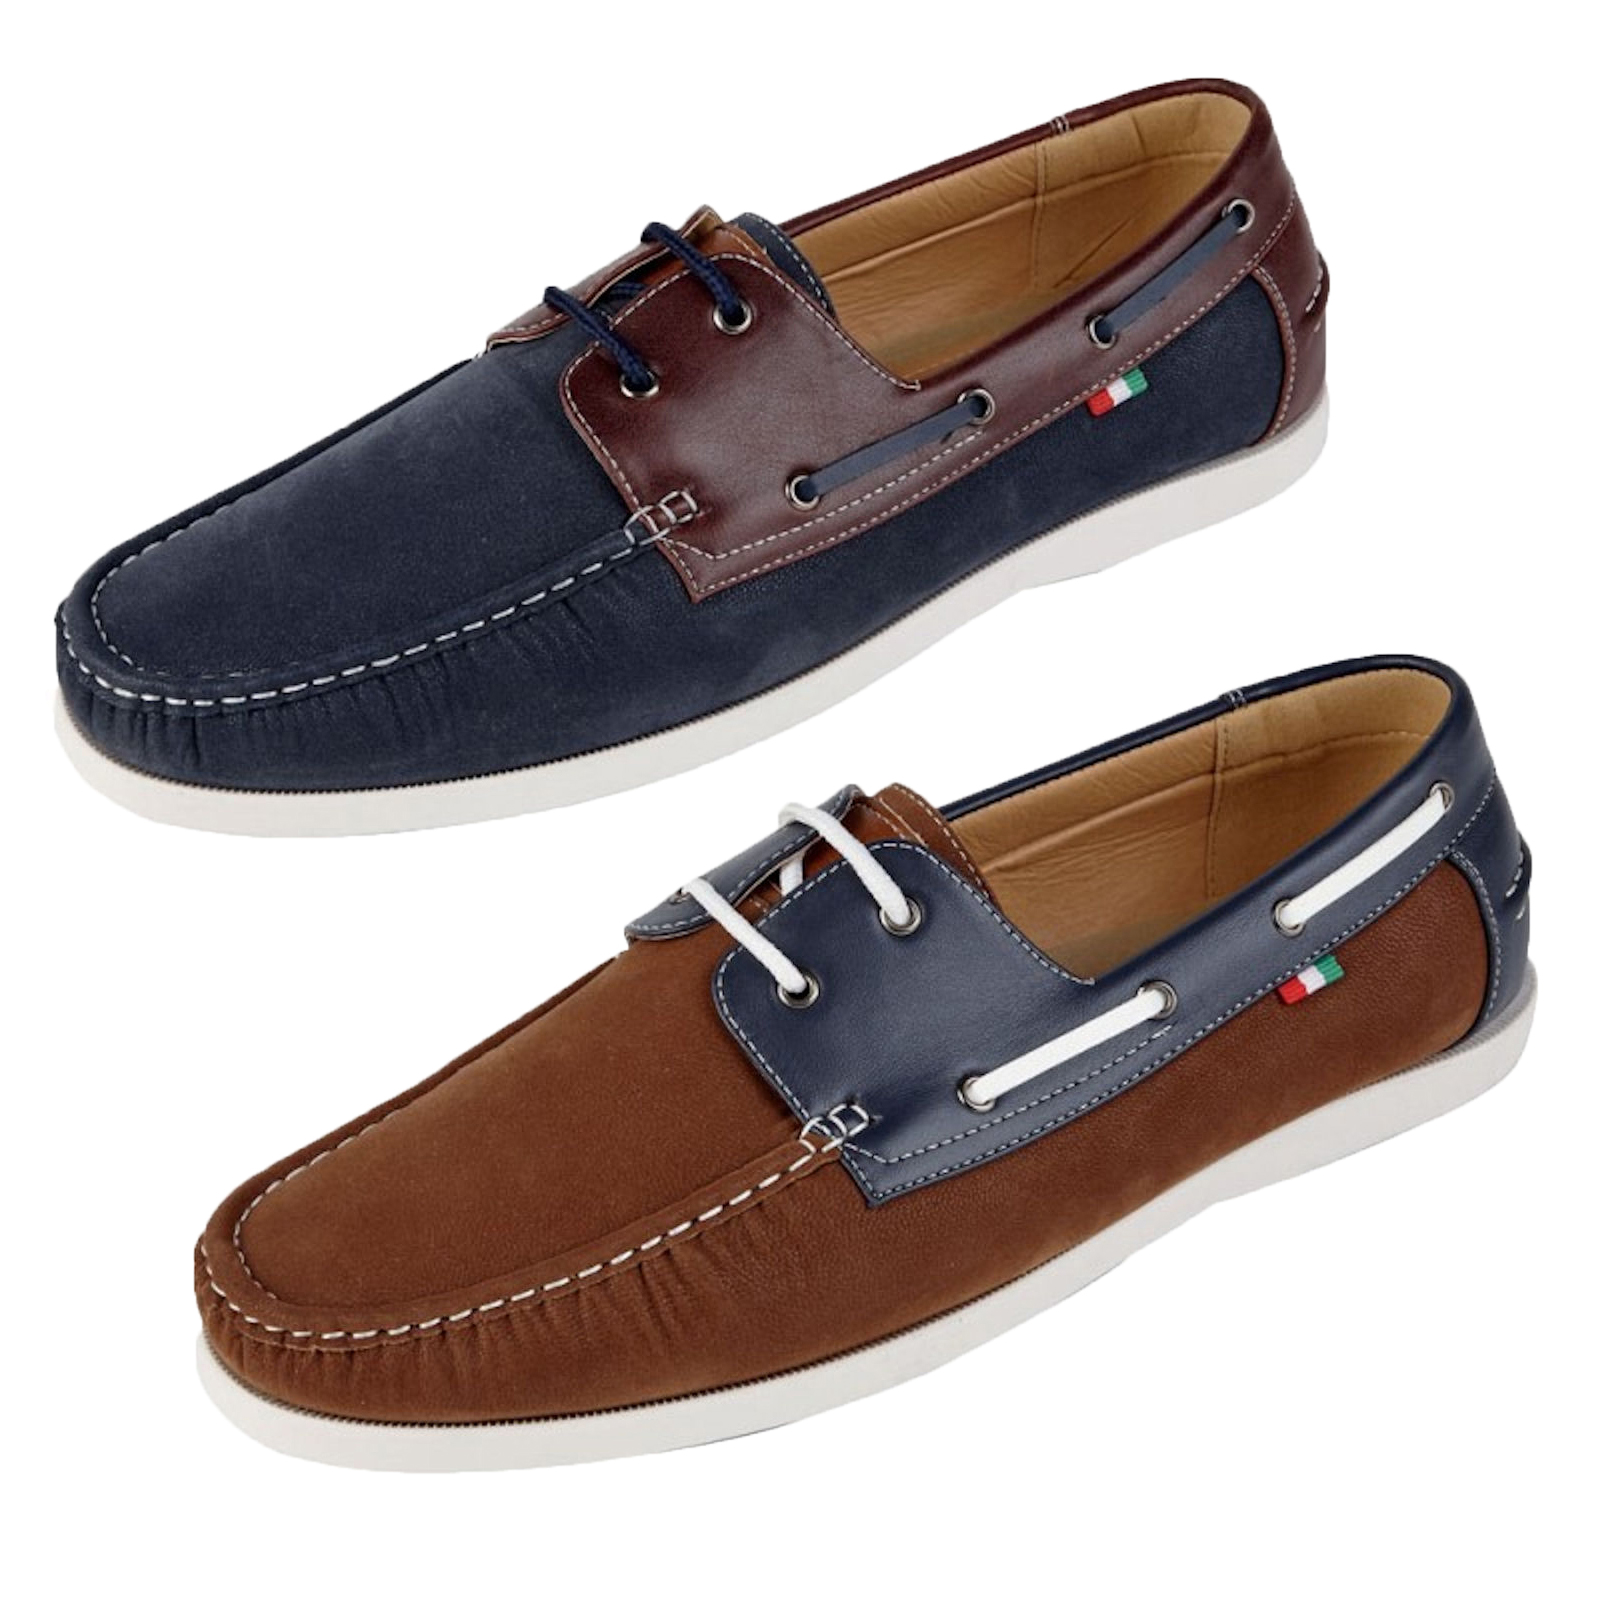 duke d555 luther king size big mens suede pu leather